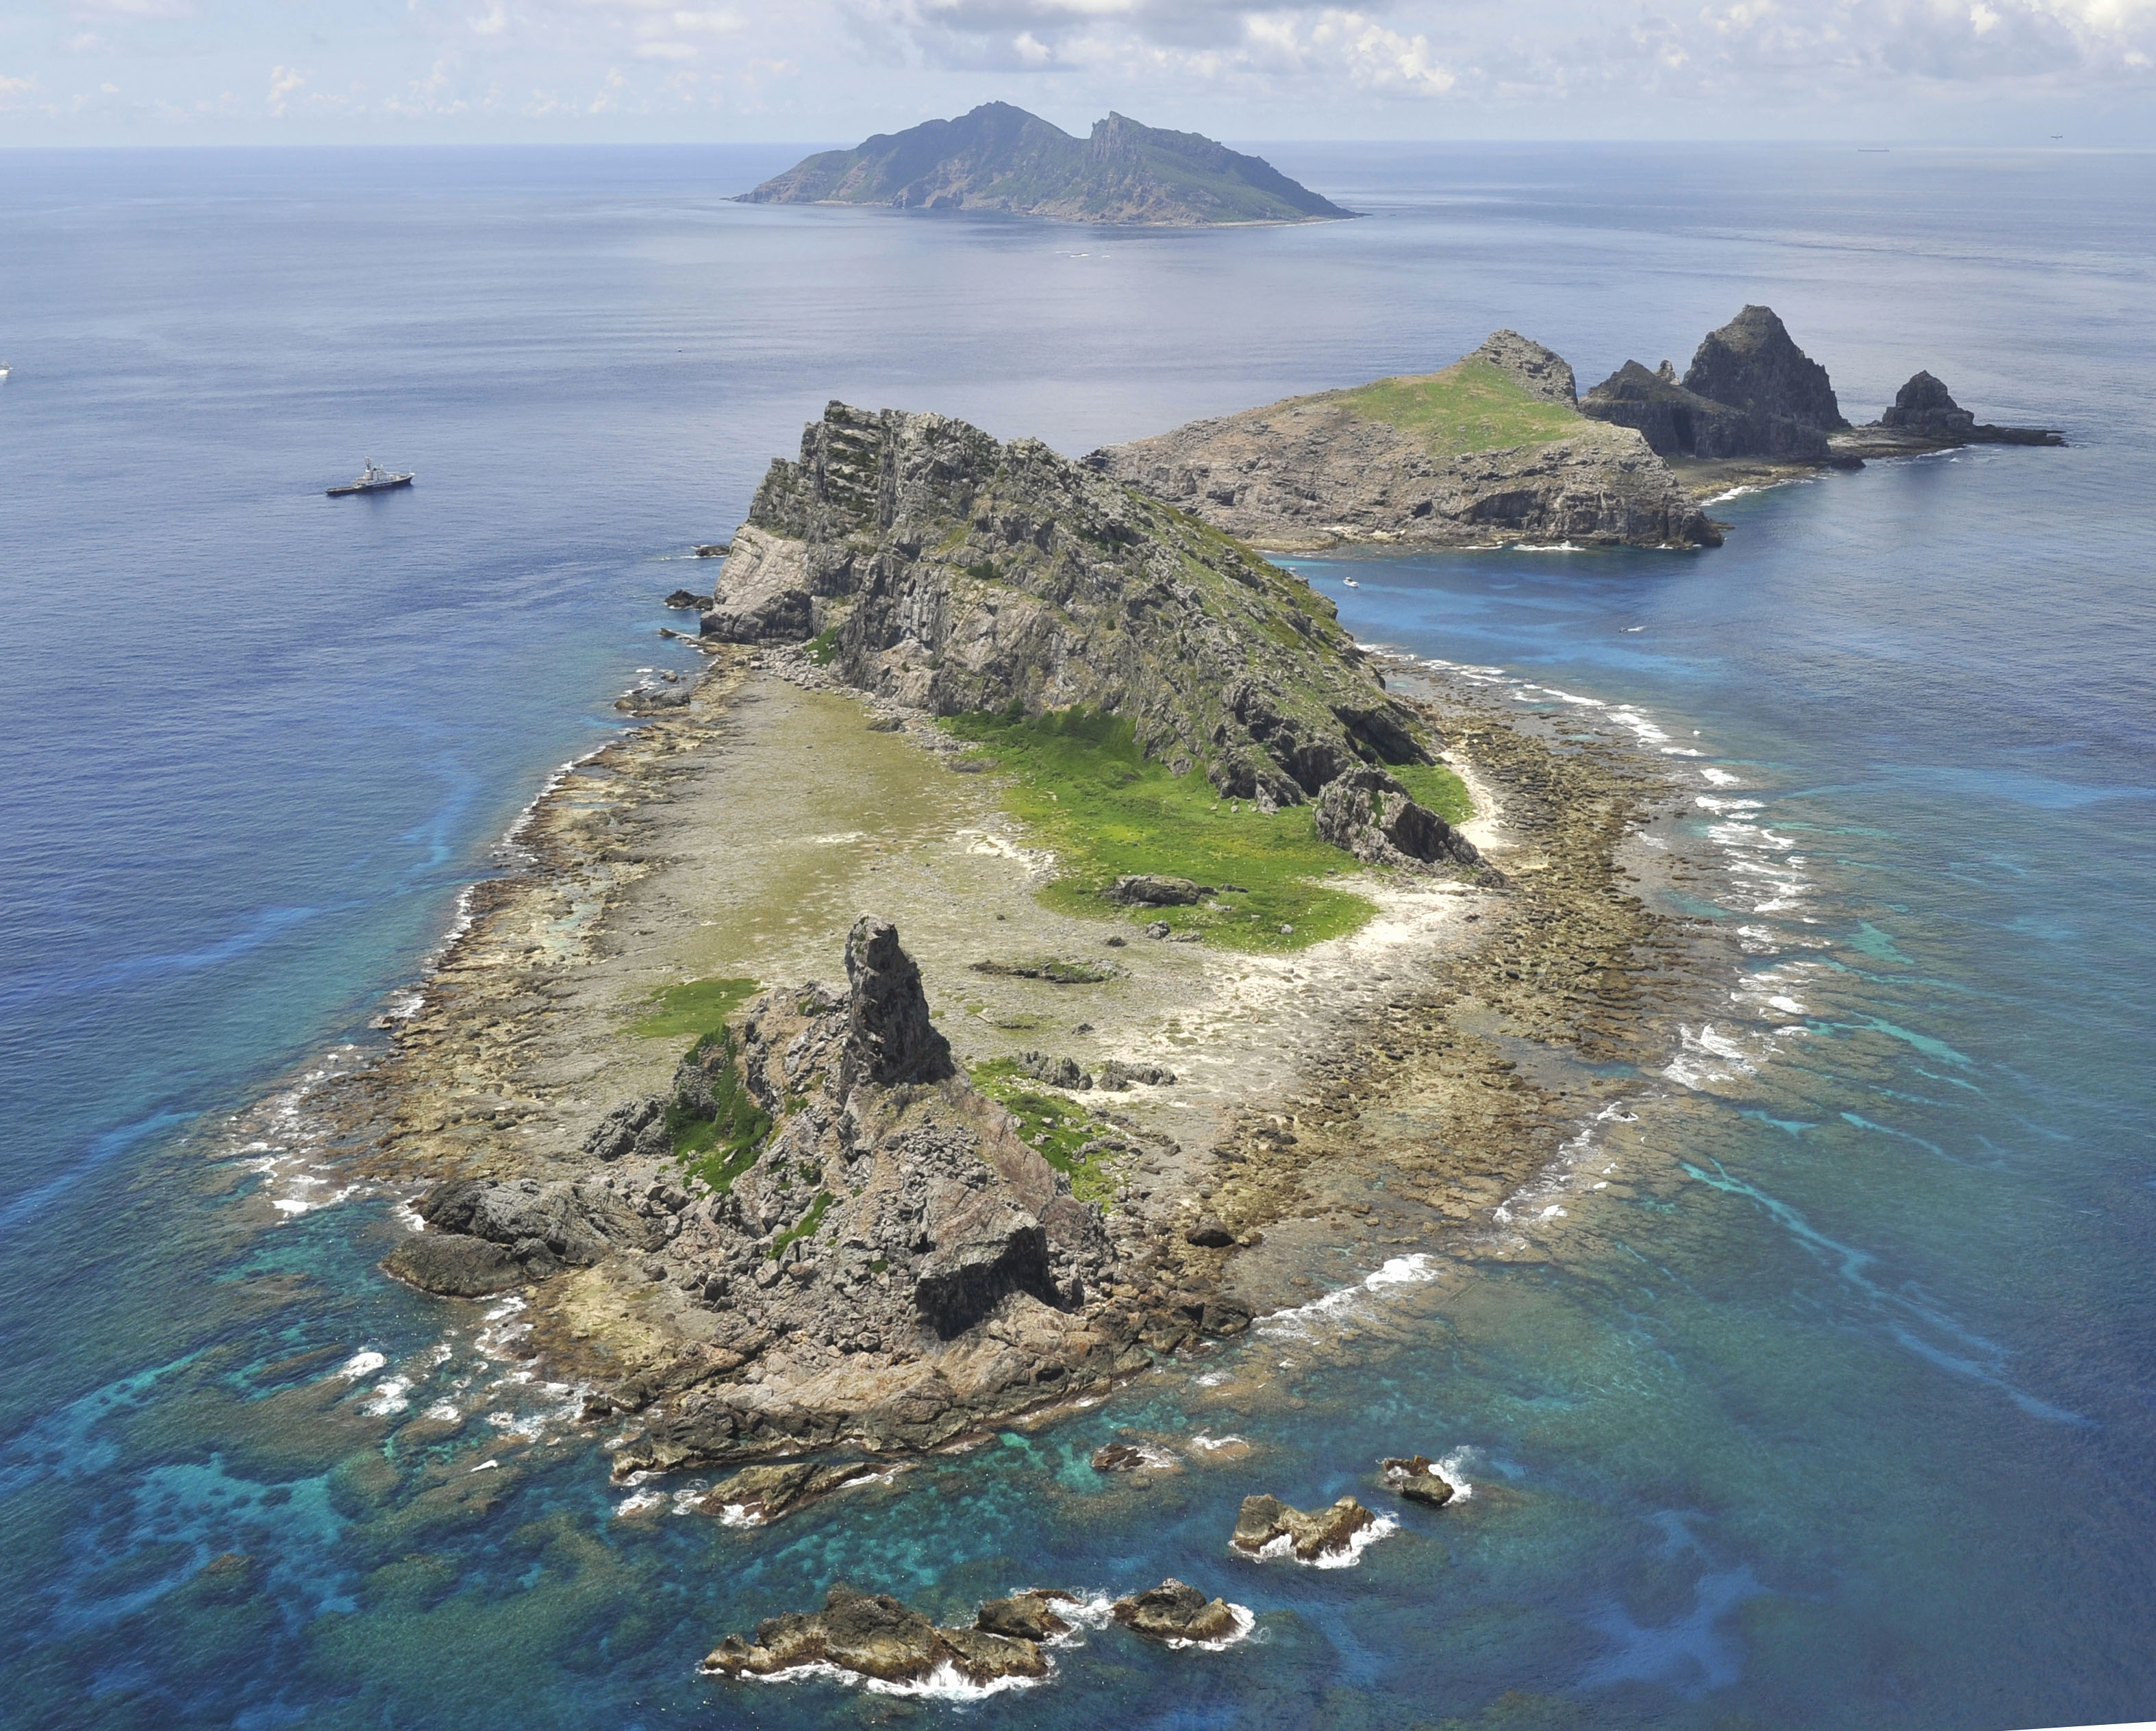 Strong undercurrents: The disputed Senkaku Islands in the East China Sea are seen in September. | KYODO